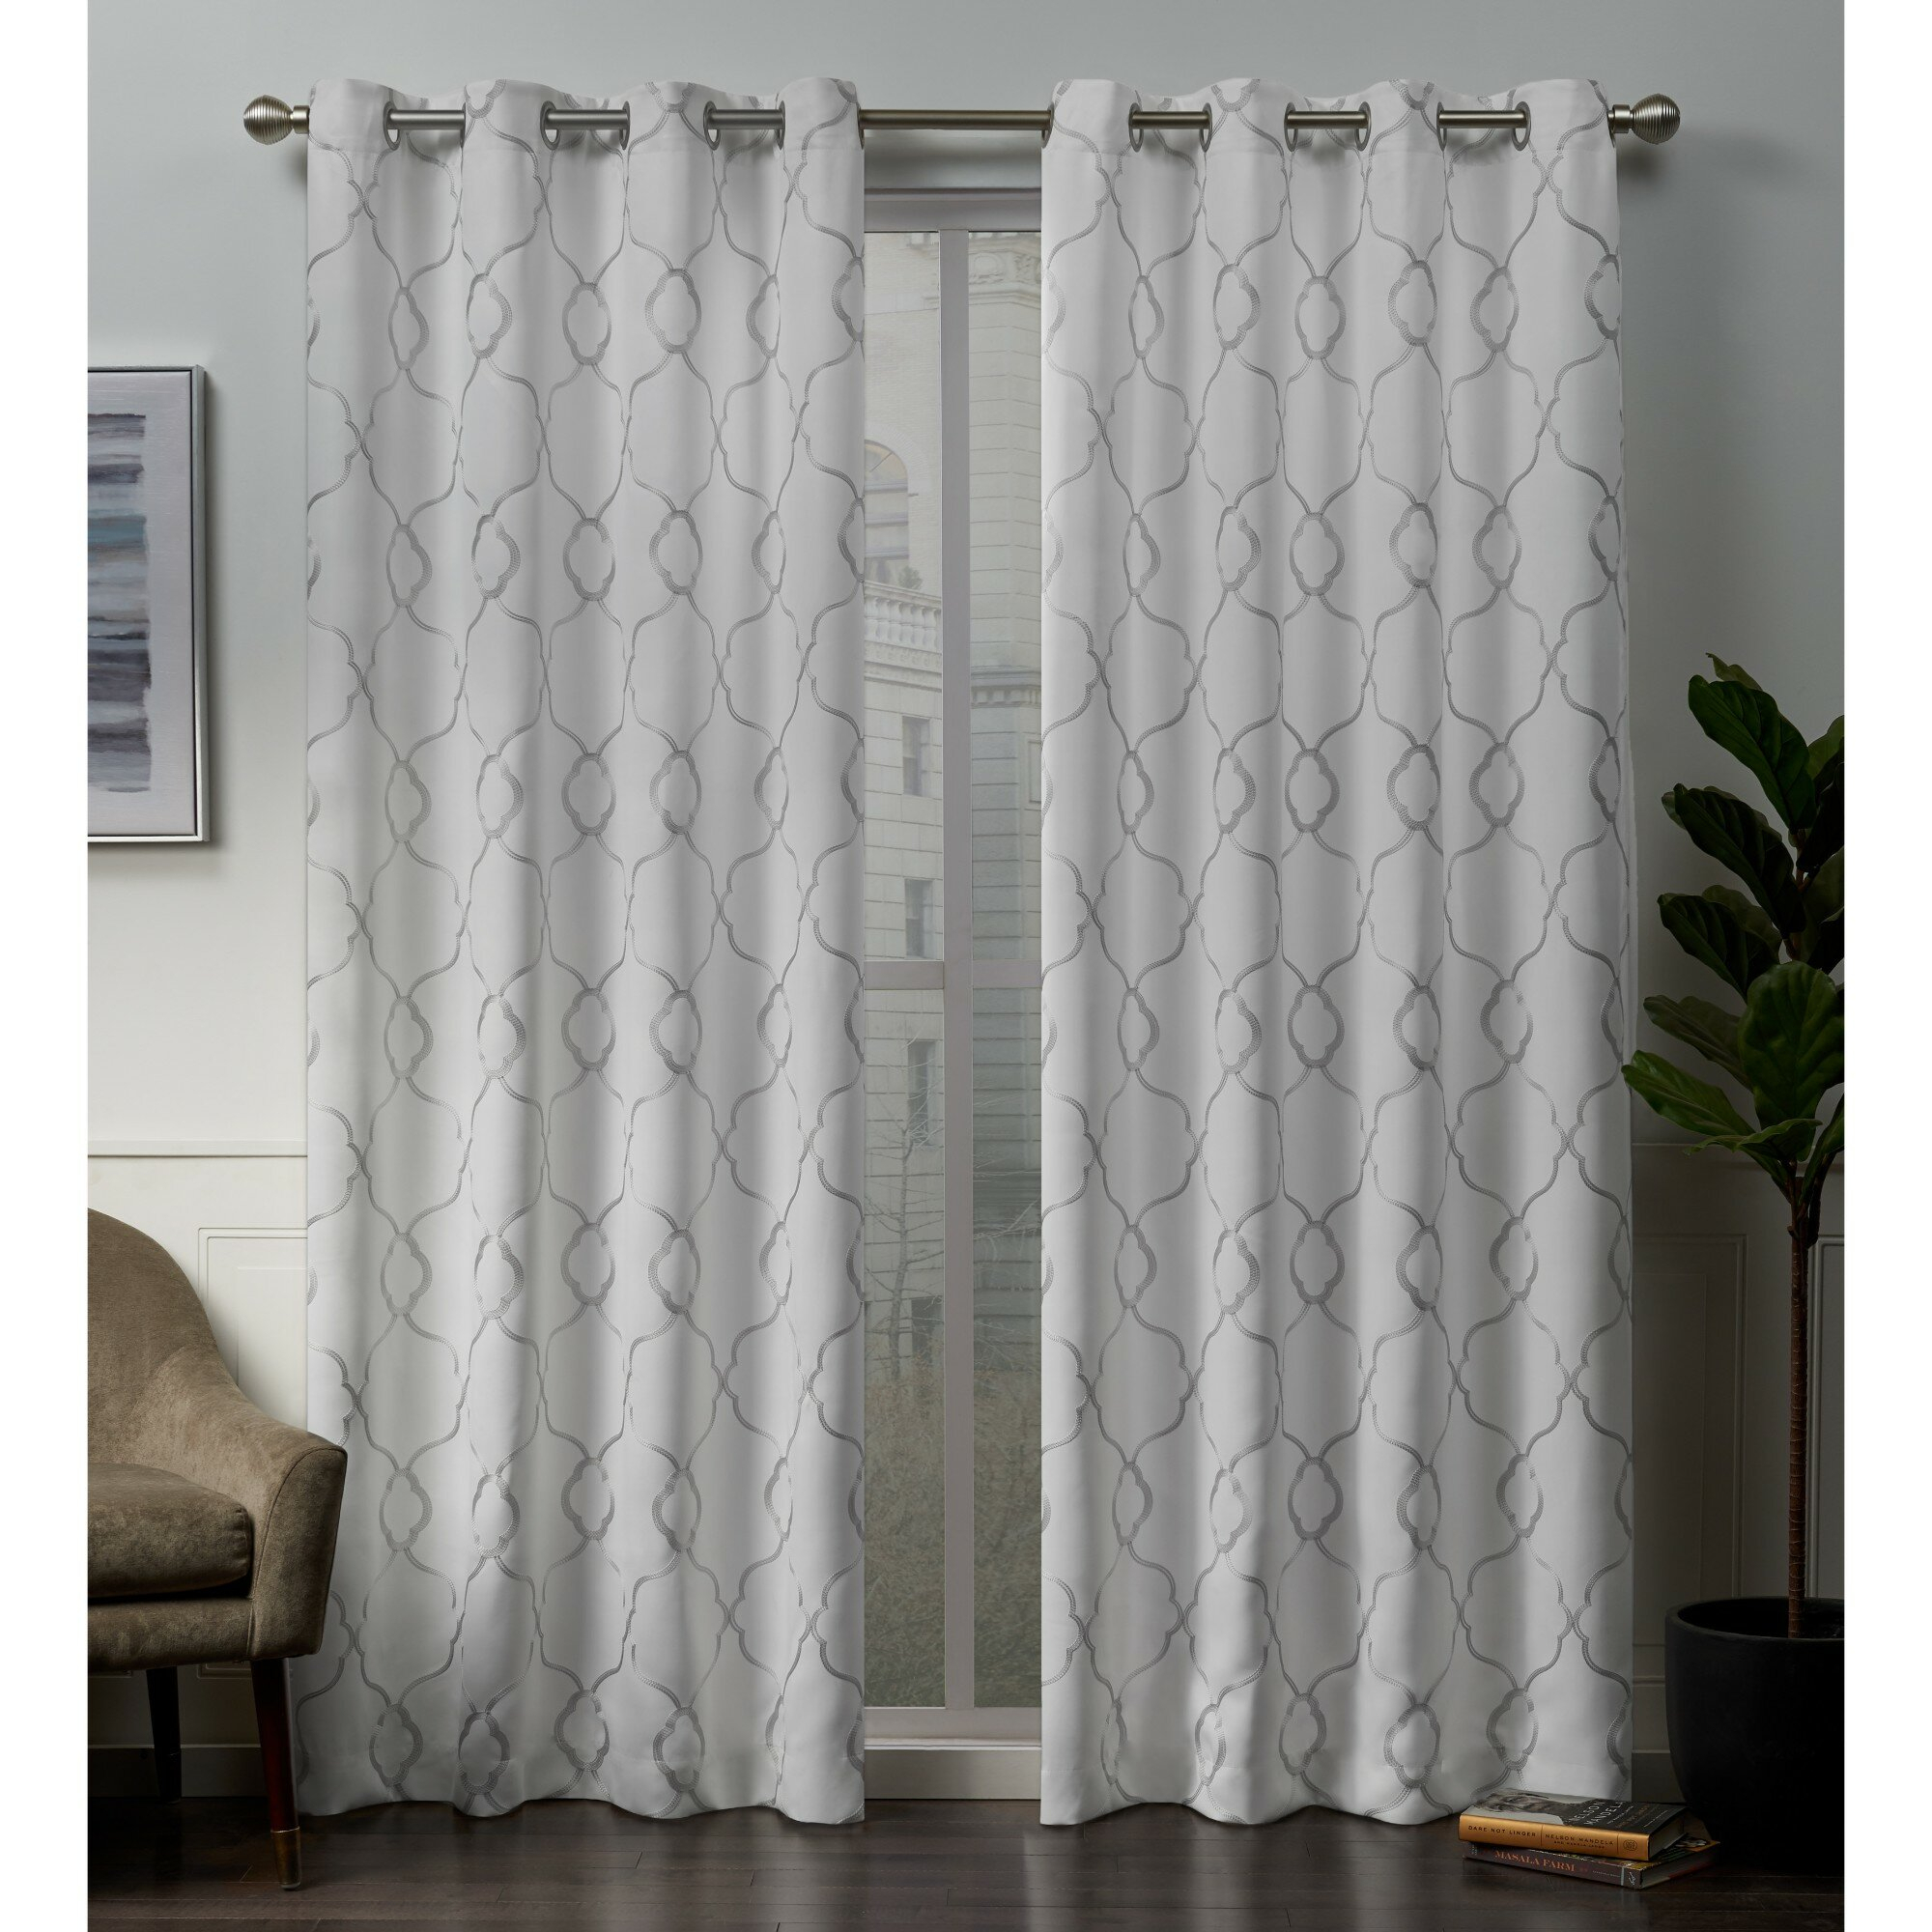 Darby Home Co Belew Embroidered Geometric Blackout Thermal With Regard To Sateen Twill Weave Insulated Blackout Window Curtain Panel Pairs (View 5 of 20)